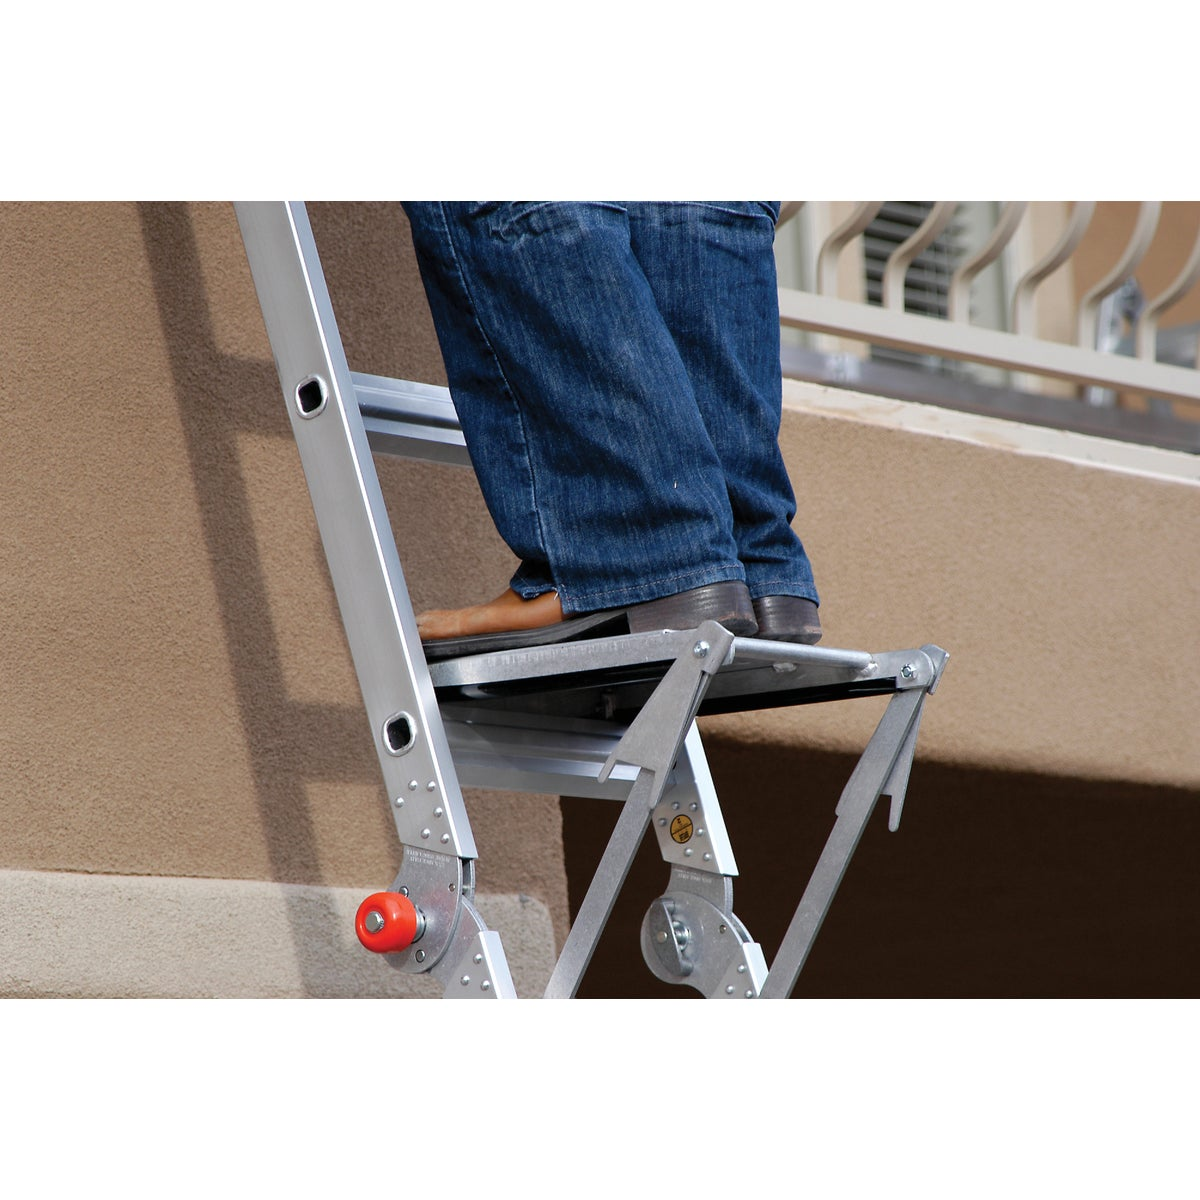 T1A WORK PLATFORM - 10104 by Wing Enterprises Inc